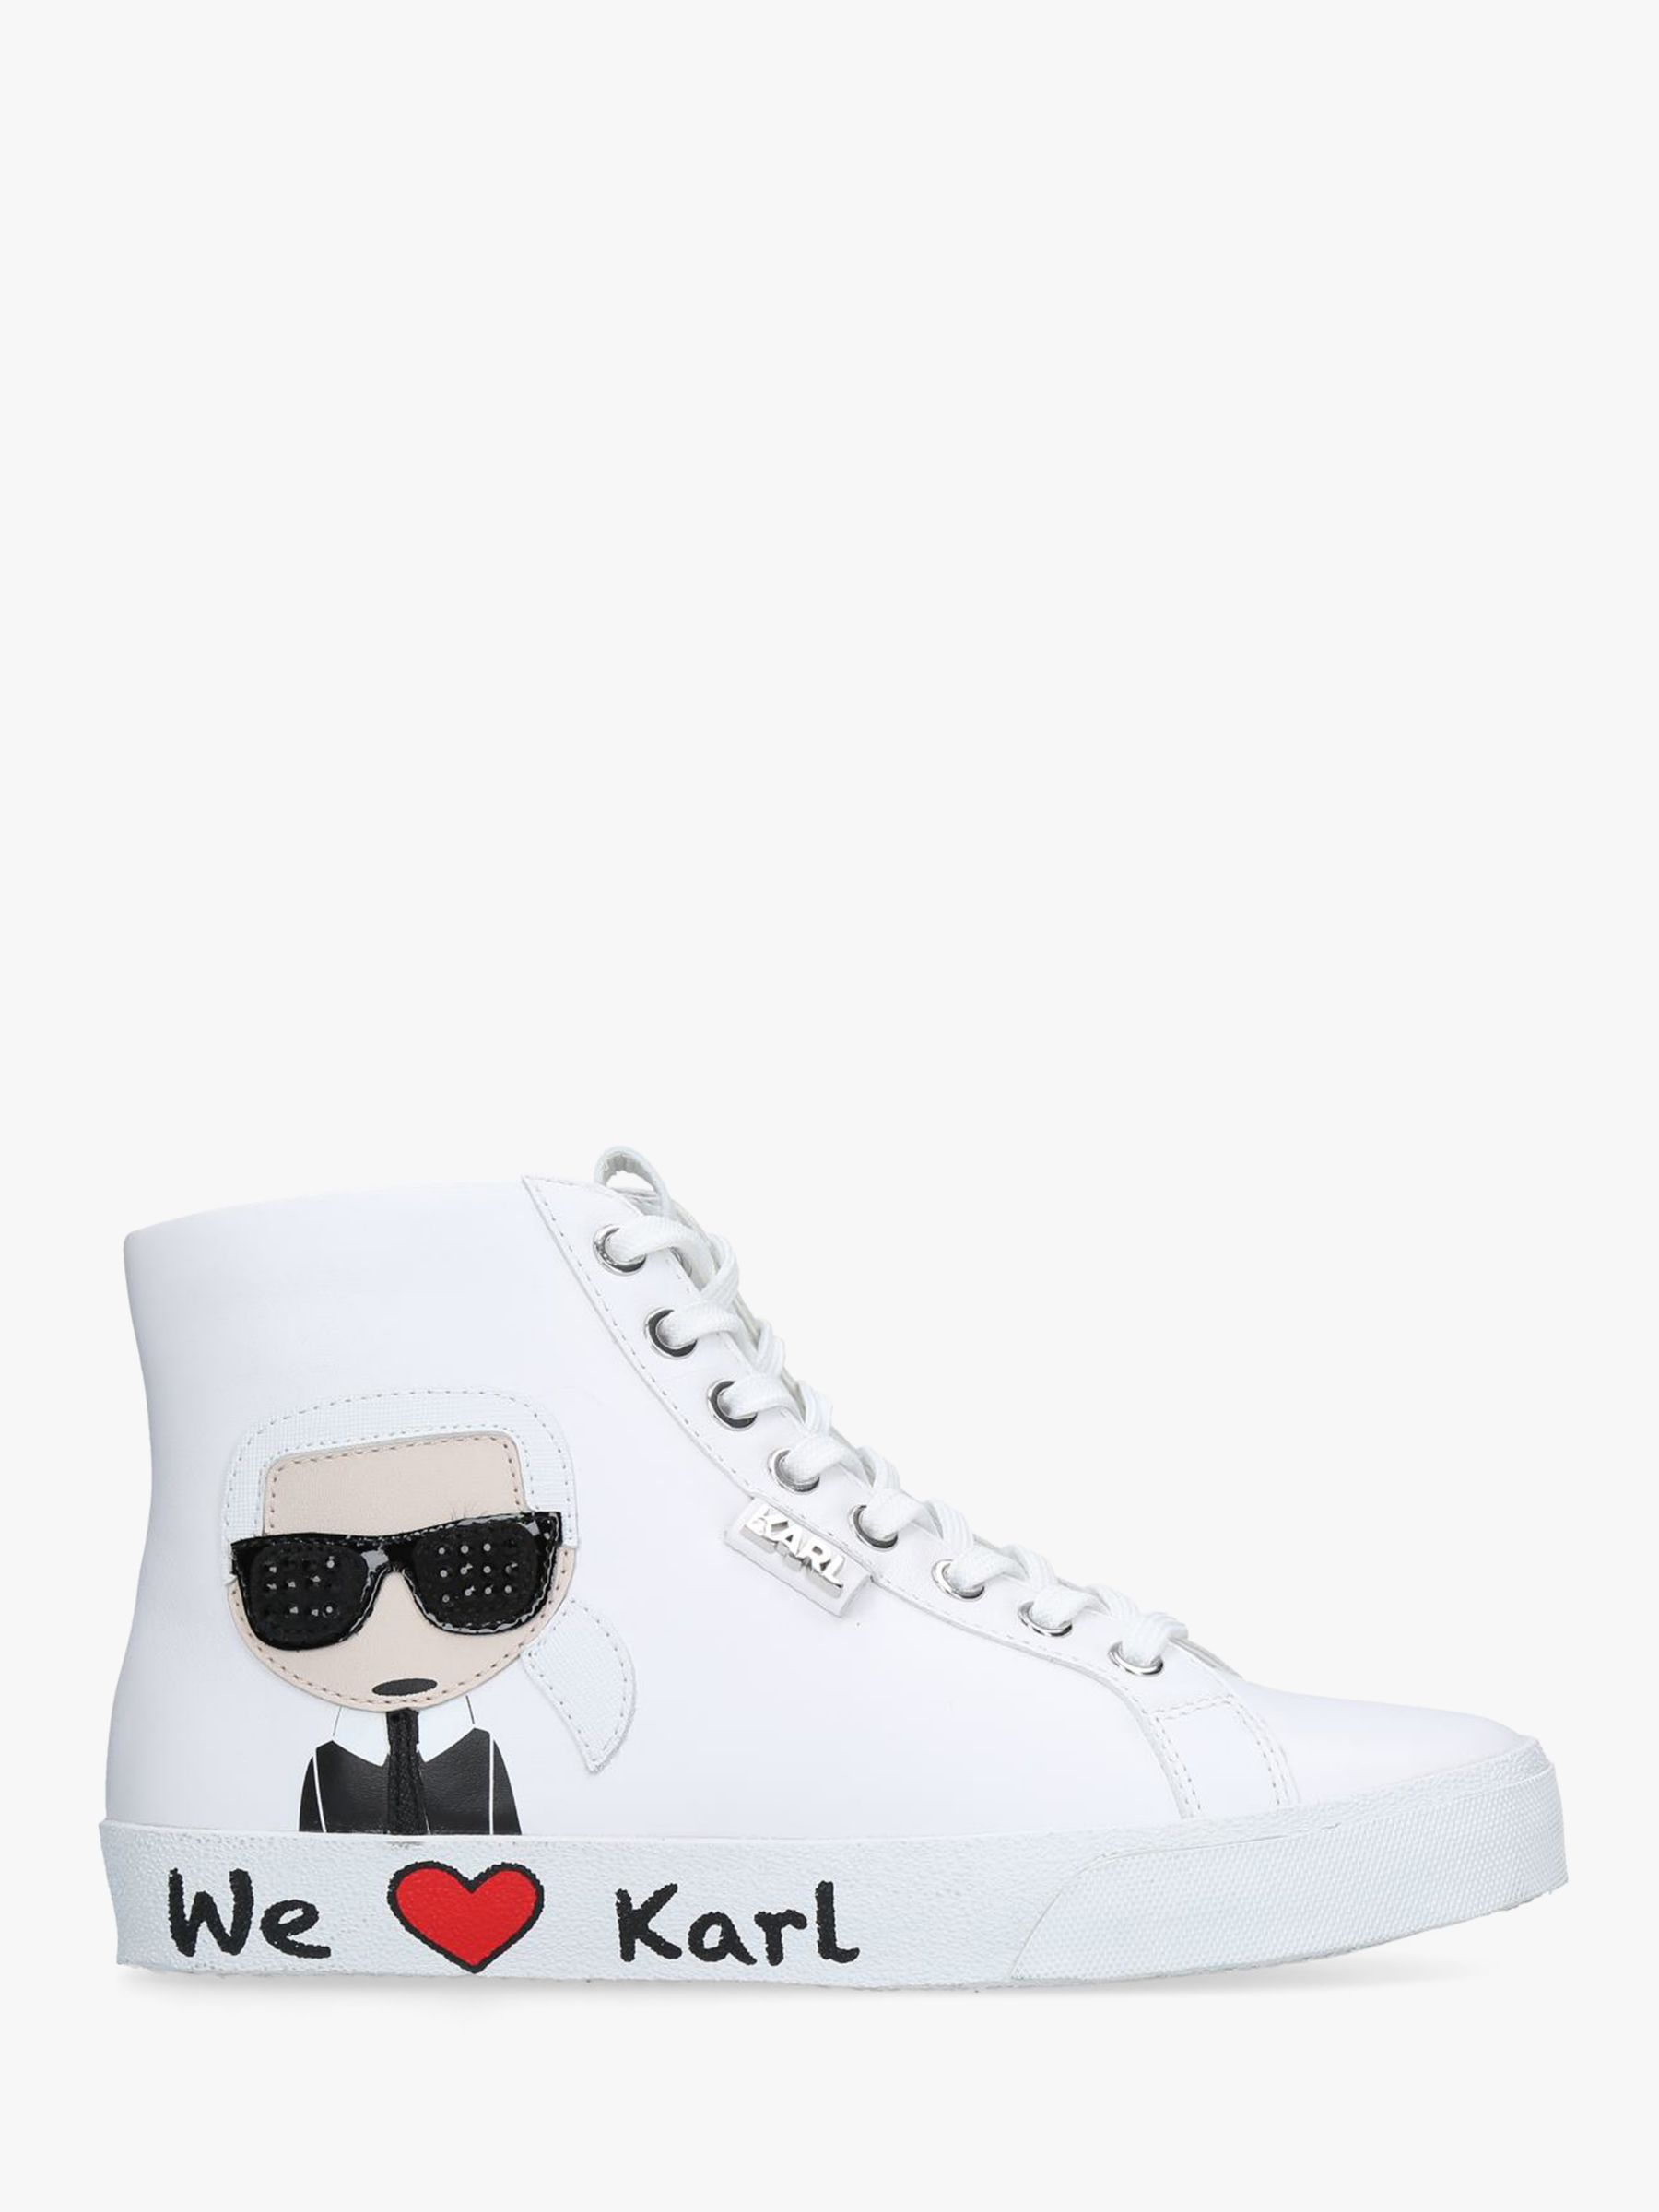 c9bea6c27d5 KARL LAGERFELD Skool Lace Up High Top Trainers